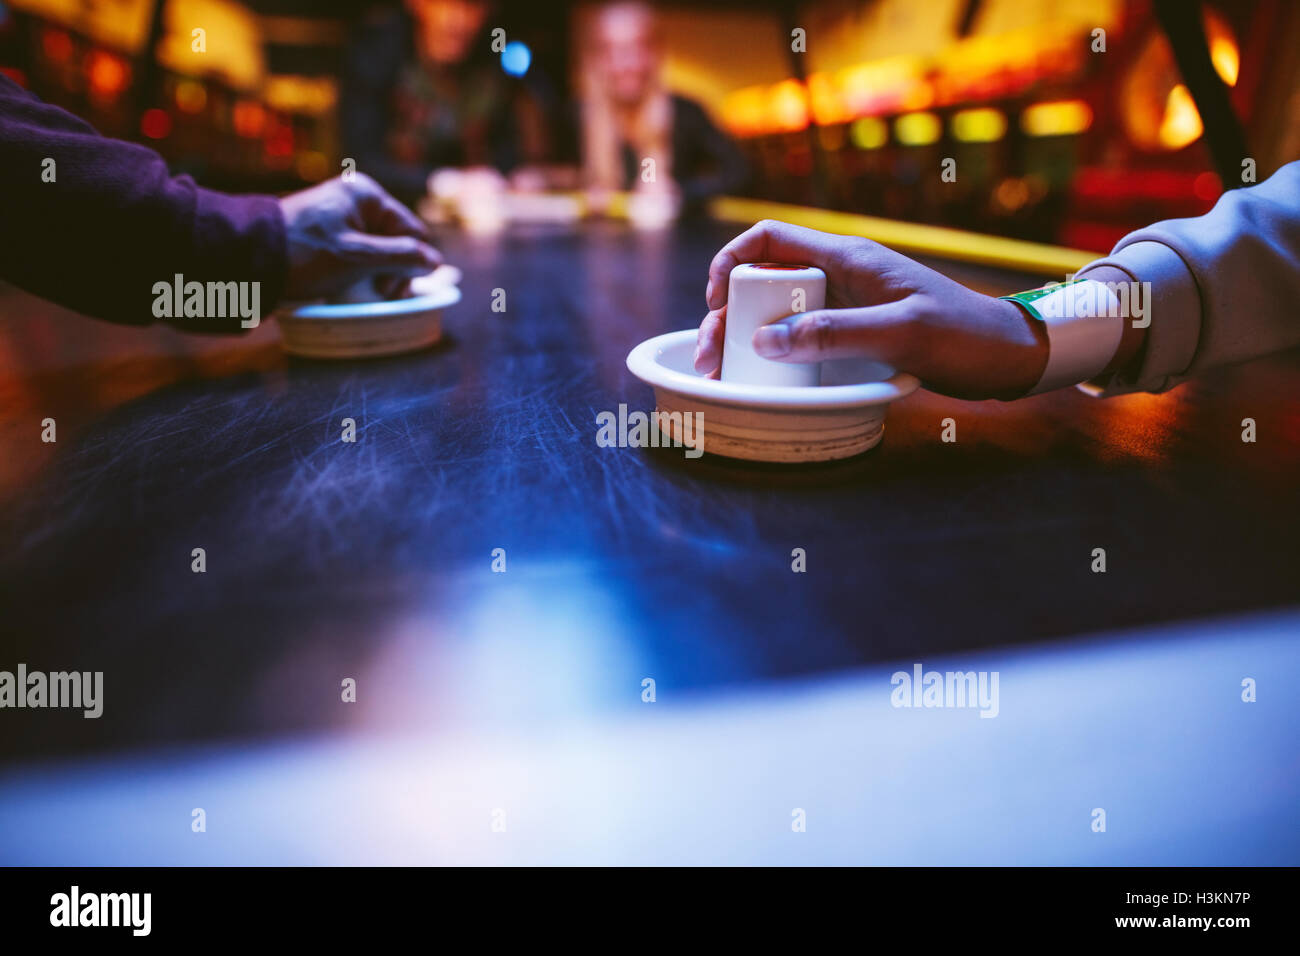 Hands of young people holding striker on air hockey table. Friends playing air hockey. - Stock Image